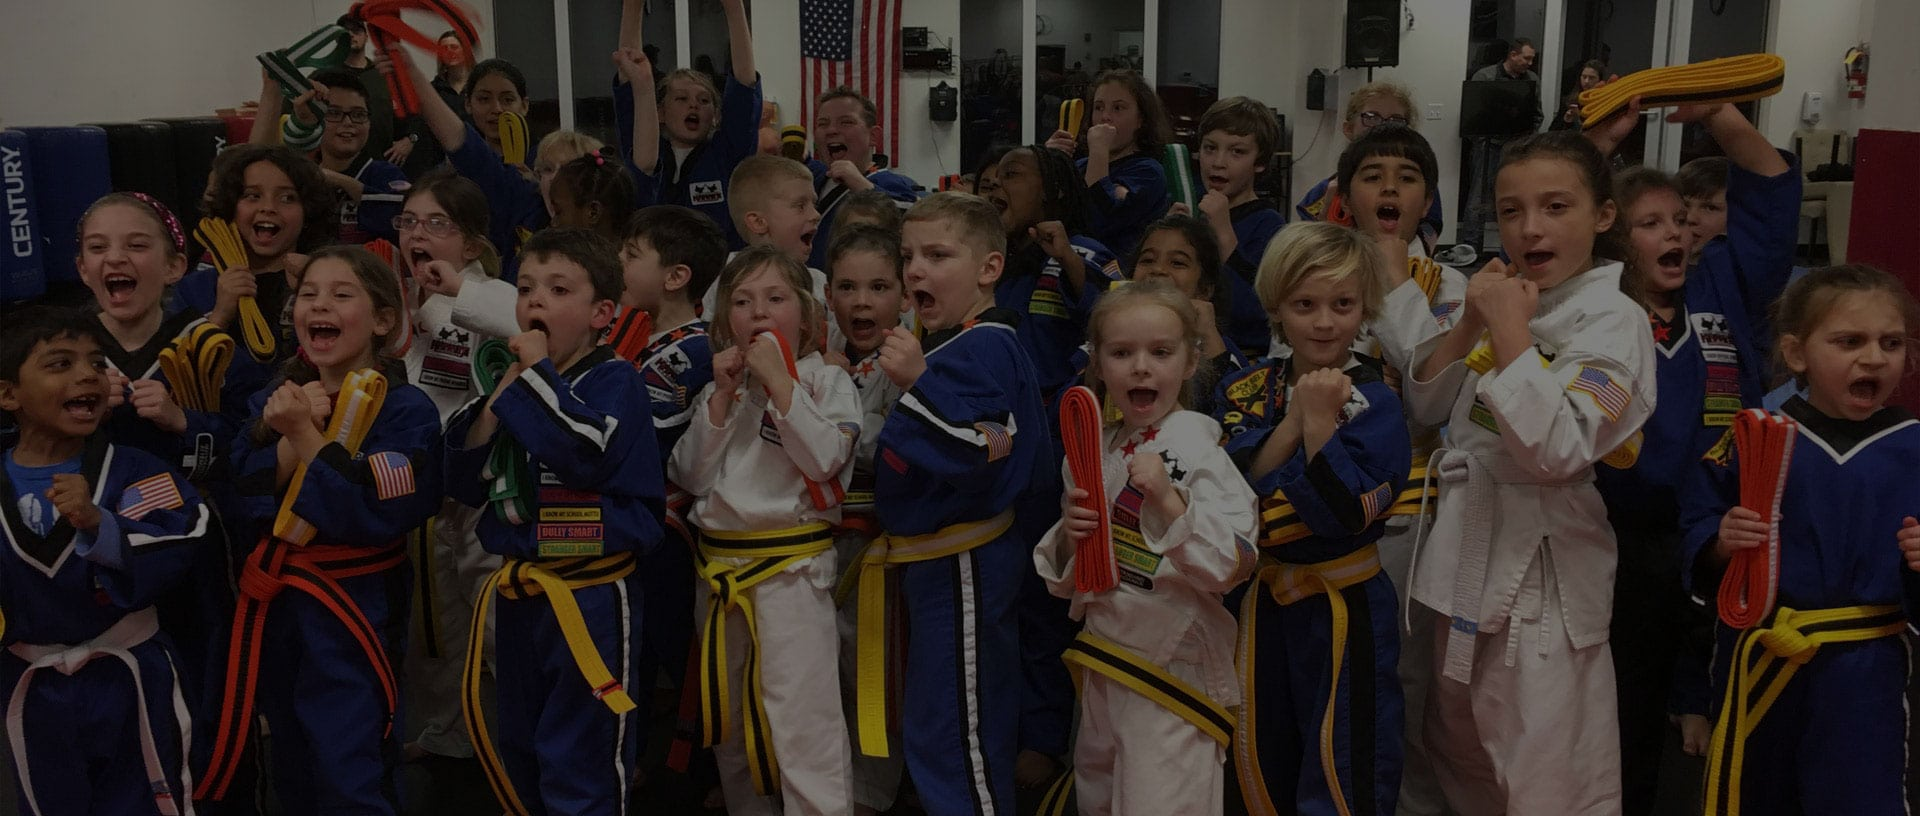 Everson's Karate Children's Programs Robbinsville, NJ